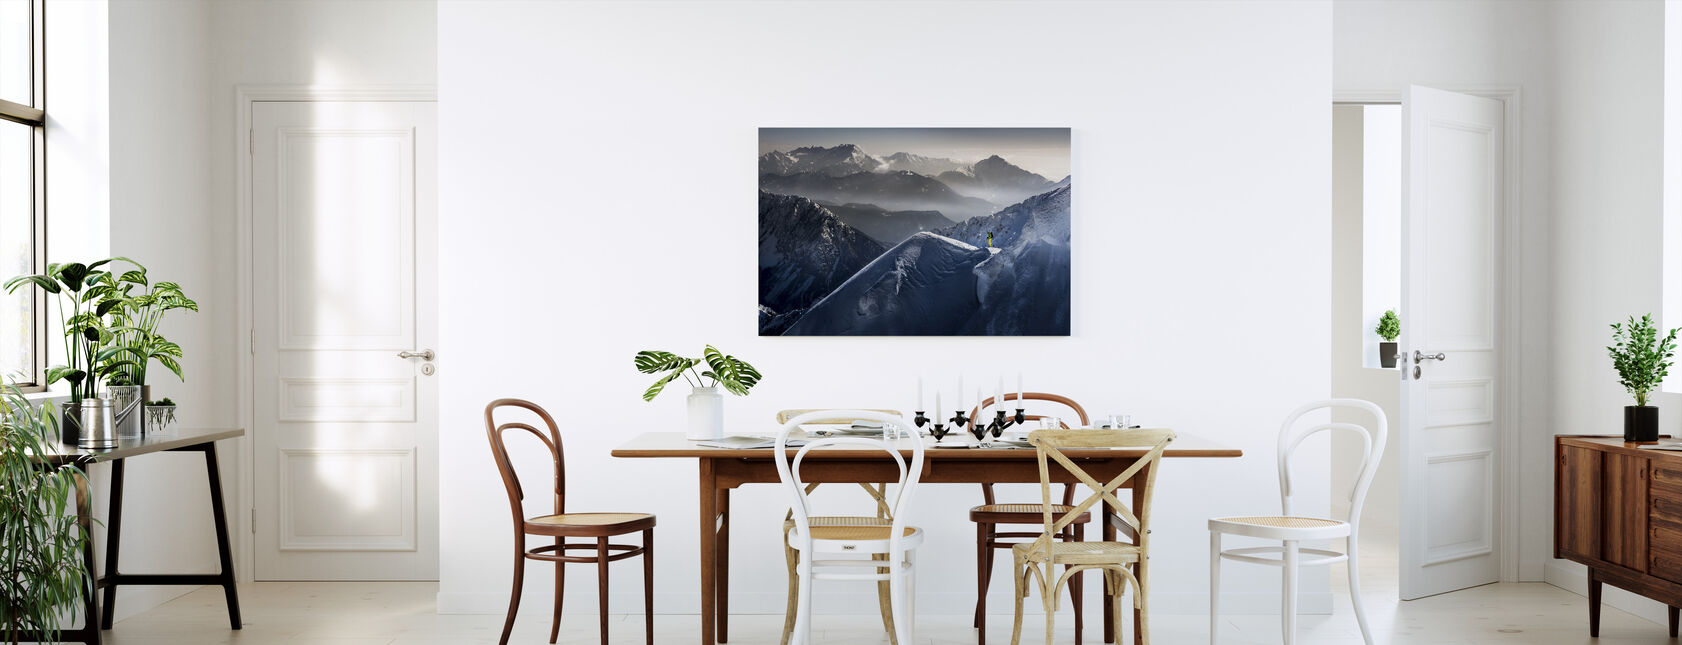 Skiër op Mountain Top - Canvas print - Keuken